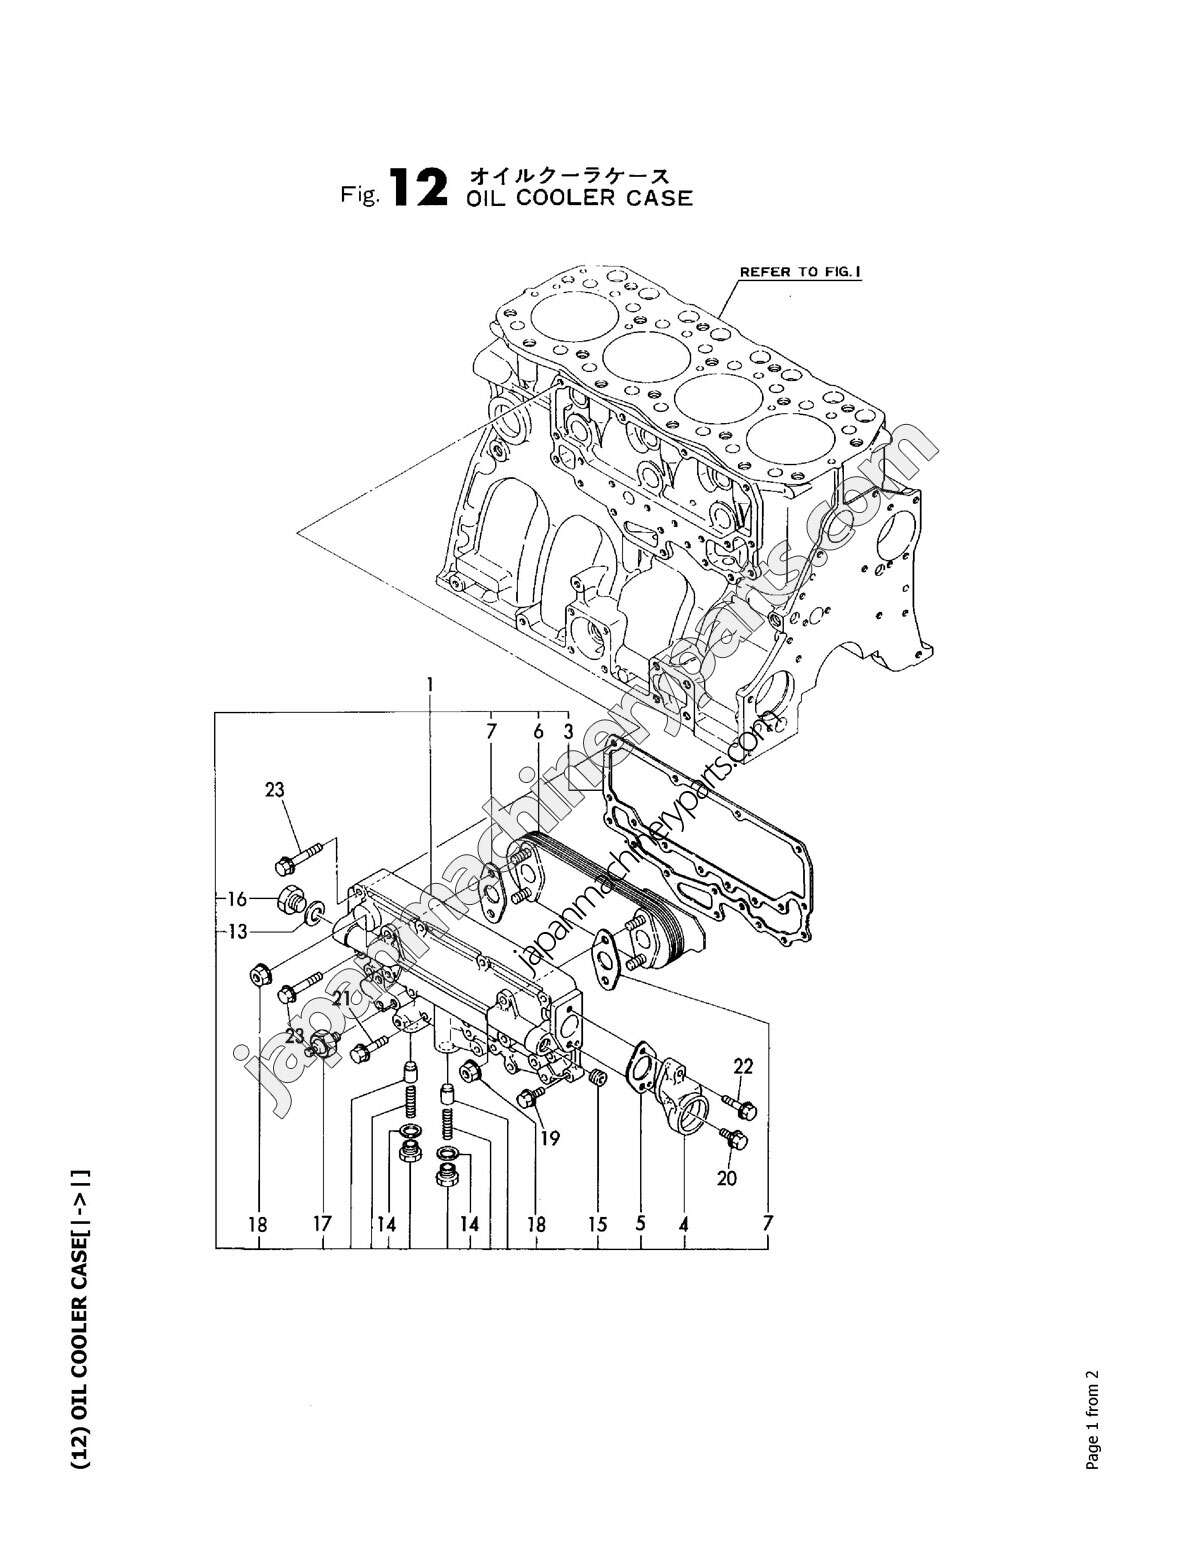 Semi Sel Engine Diagram Semi Tractor Parts System Wiring